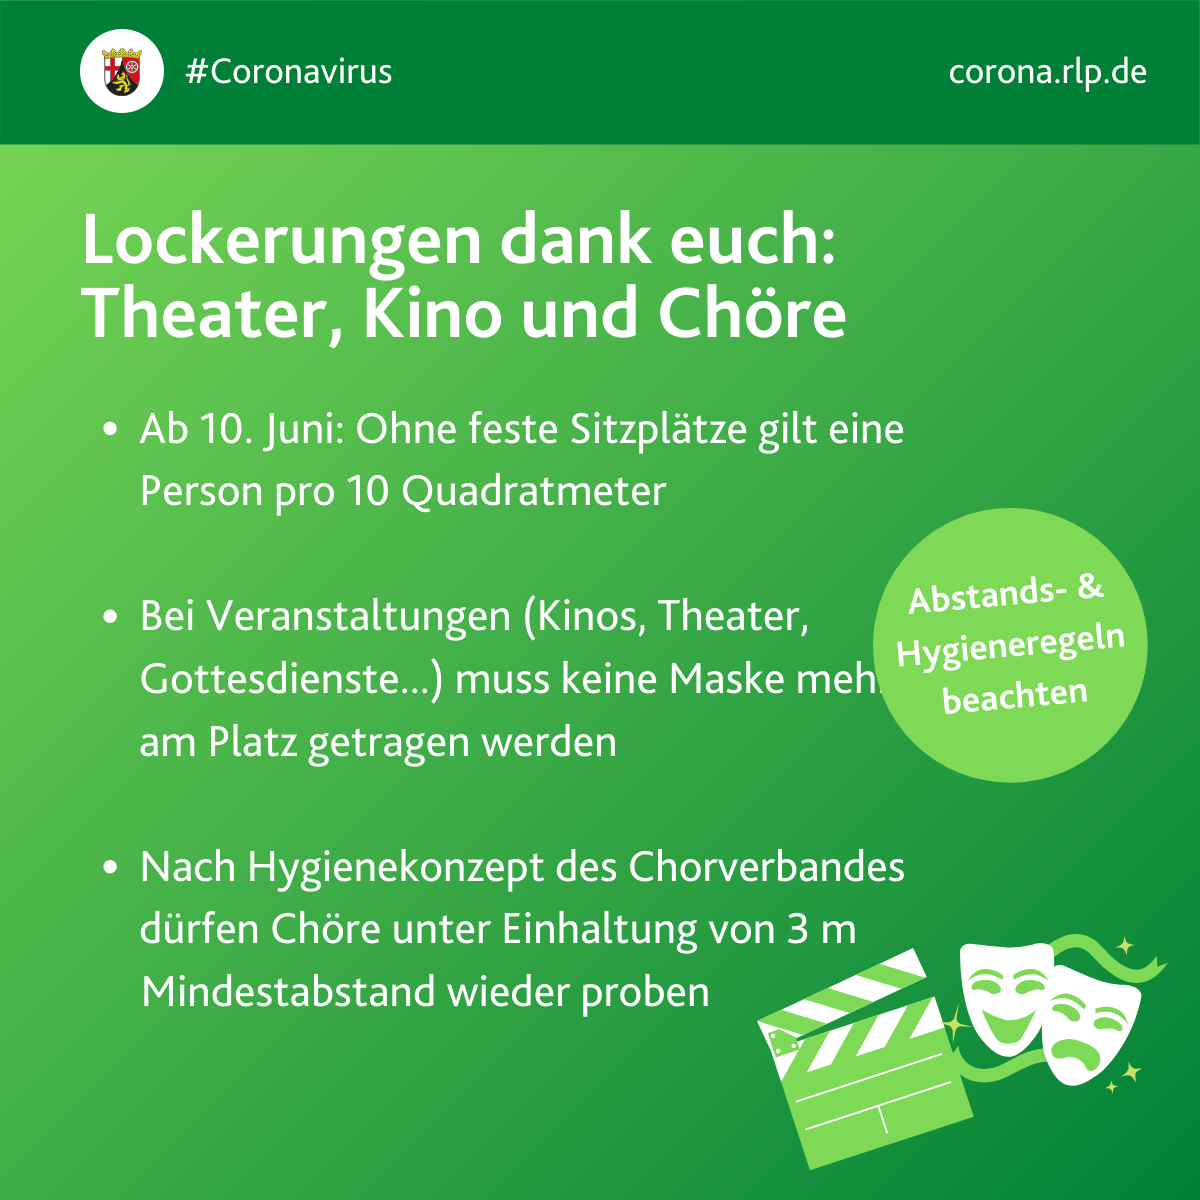 Lockerungen: Theater, Kino, Chöre